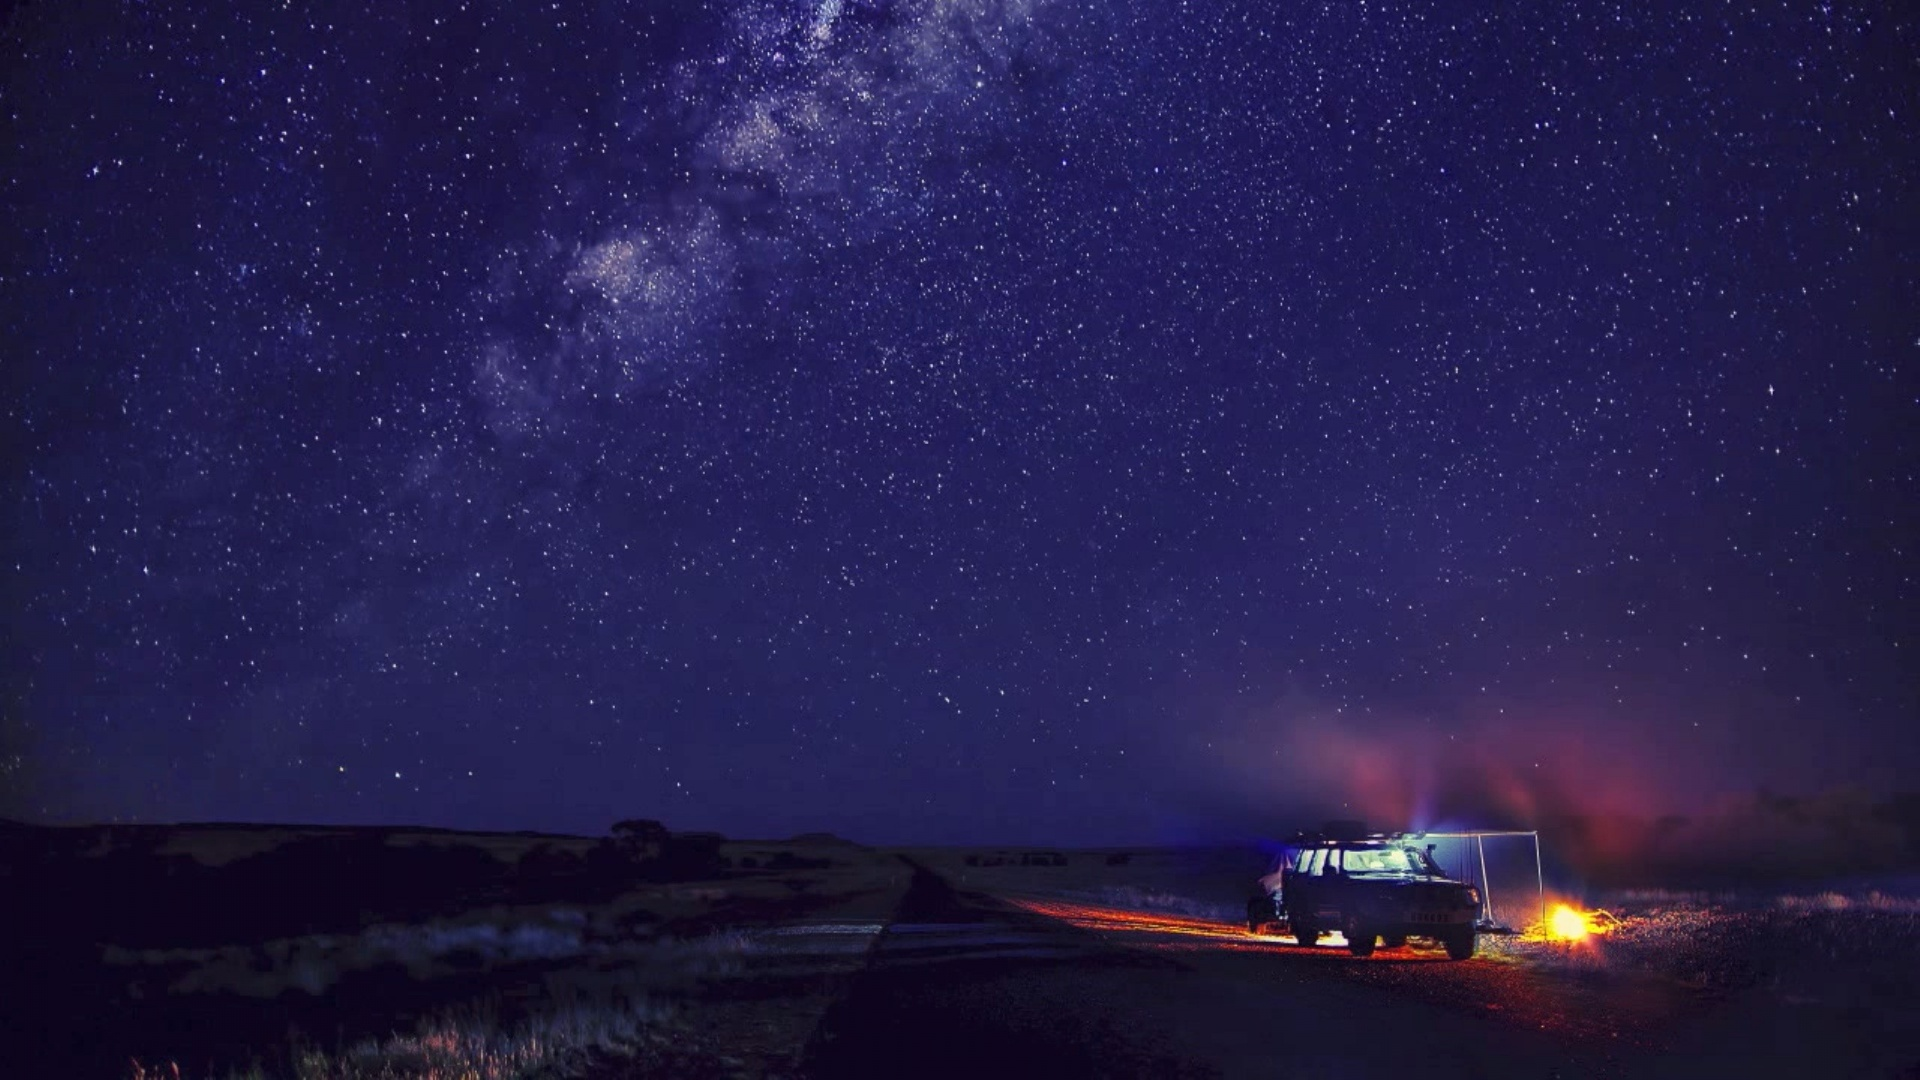 1920x1080 Camp and Starry Sky desktop PC and Mac wallpaper 1920x1080